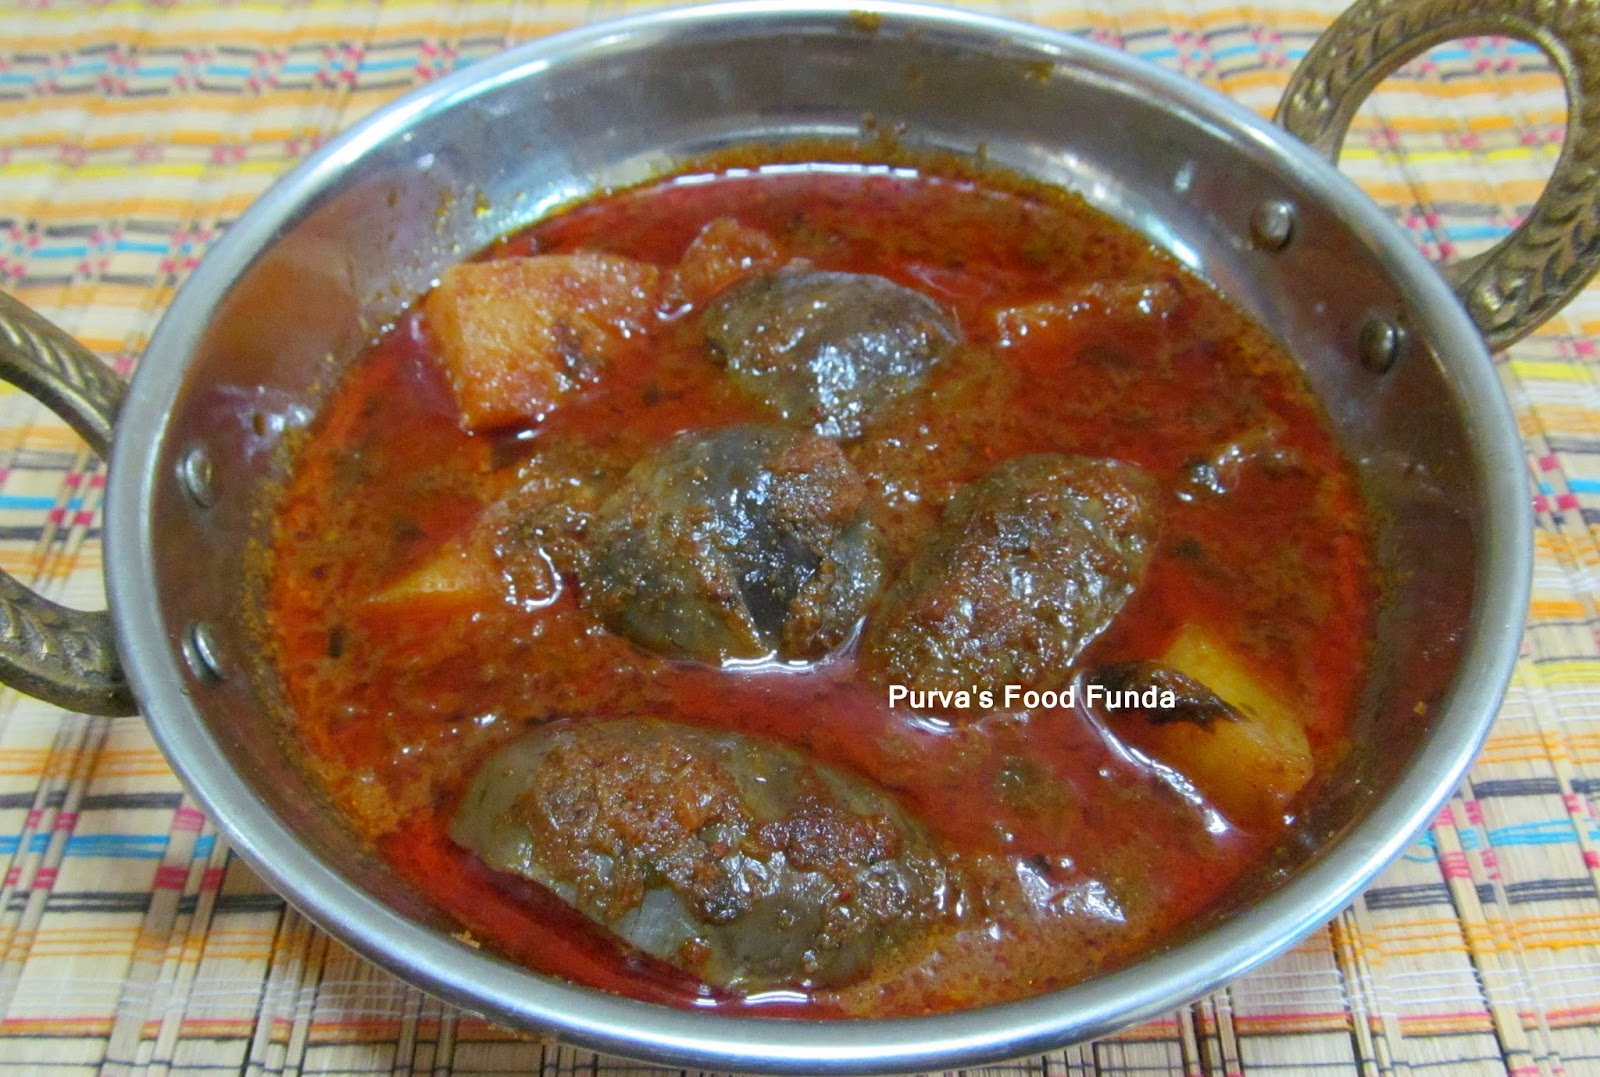 Indian food recipes indian recipes desi food desi recipes a typical maharashtrian curry batata ani vangyacha rassa this curry is made too many styles this style is used in kokan belt forumfinder Image collections